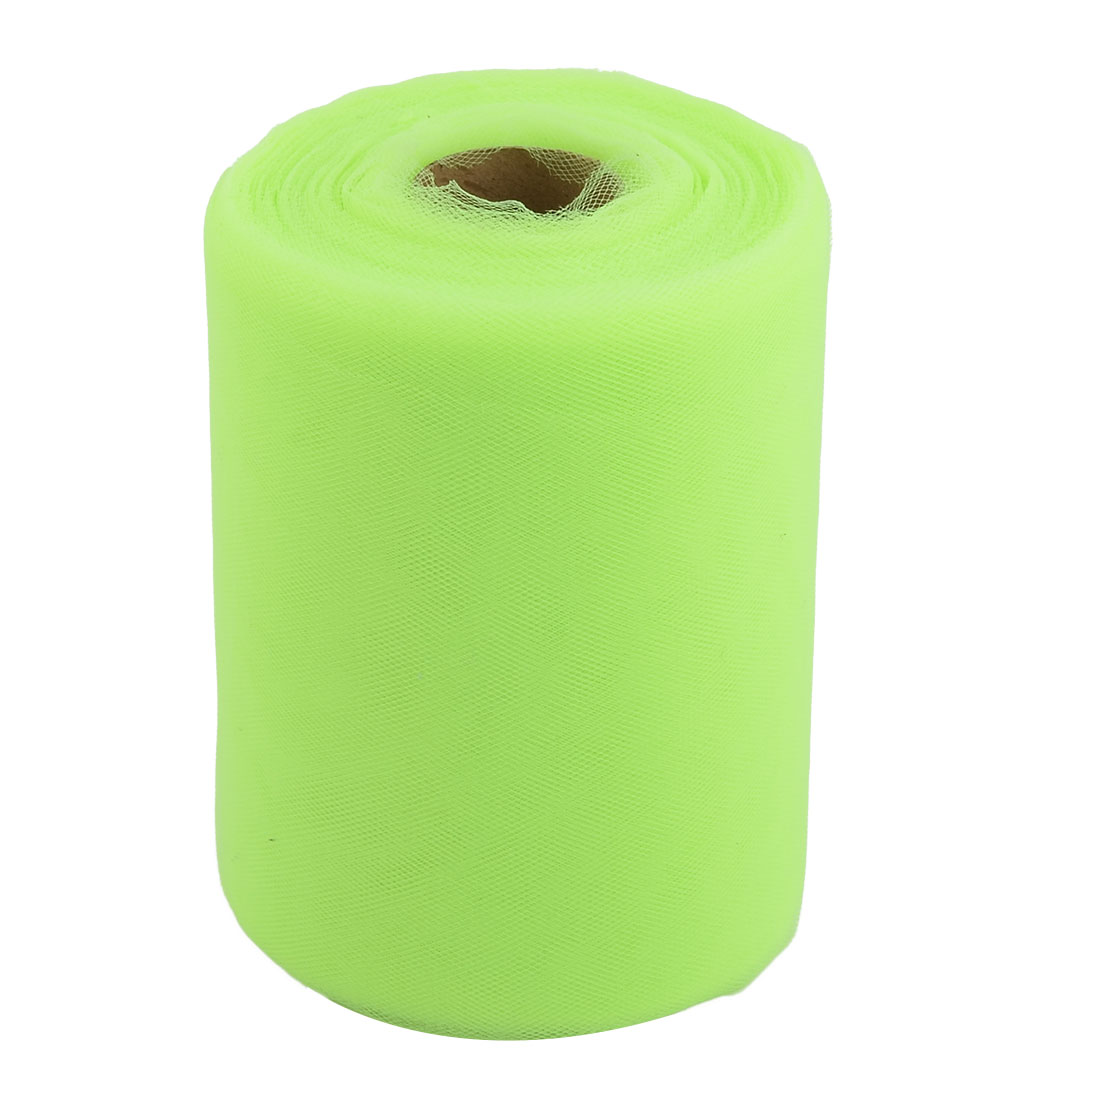 Home Polyester Tutu Gift Packing Ornament Tulle Spool Roll Green Yellow 6 Inch x 100 Yards